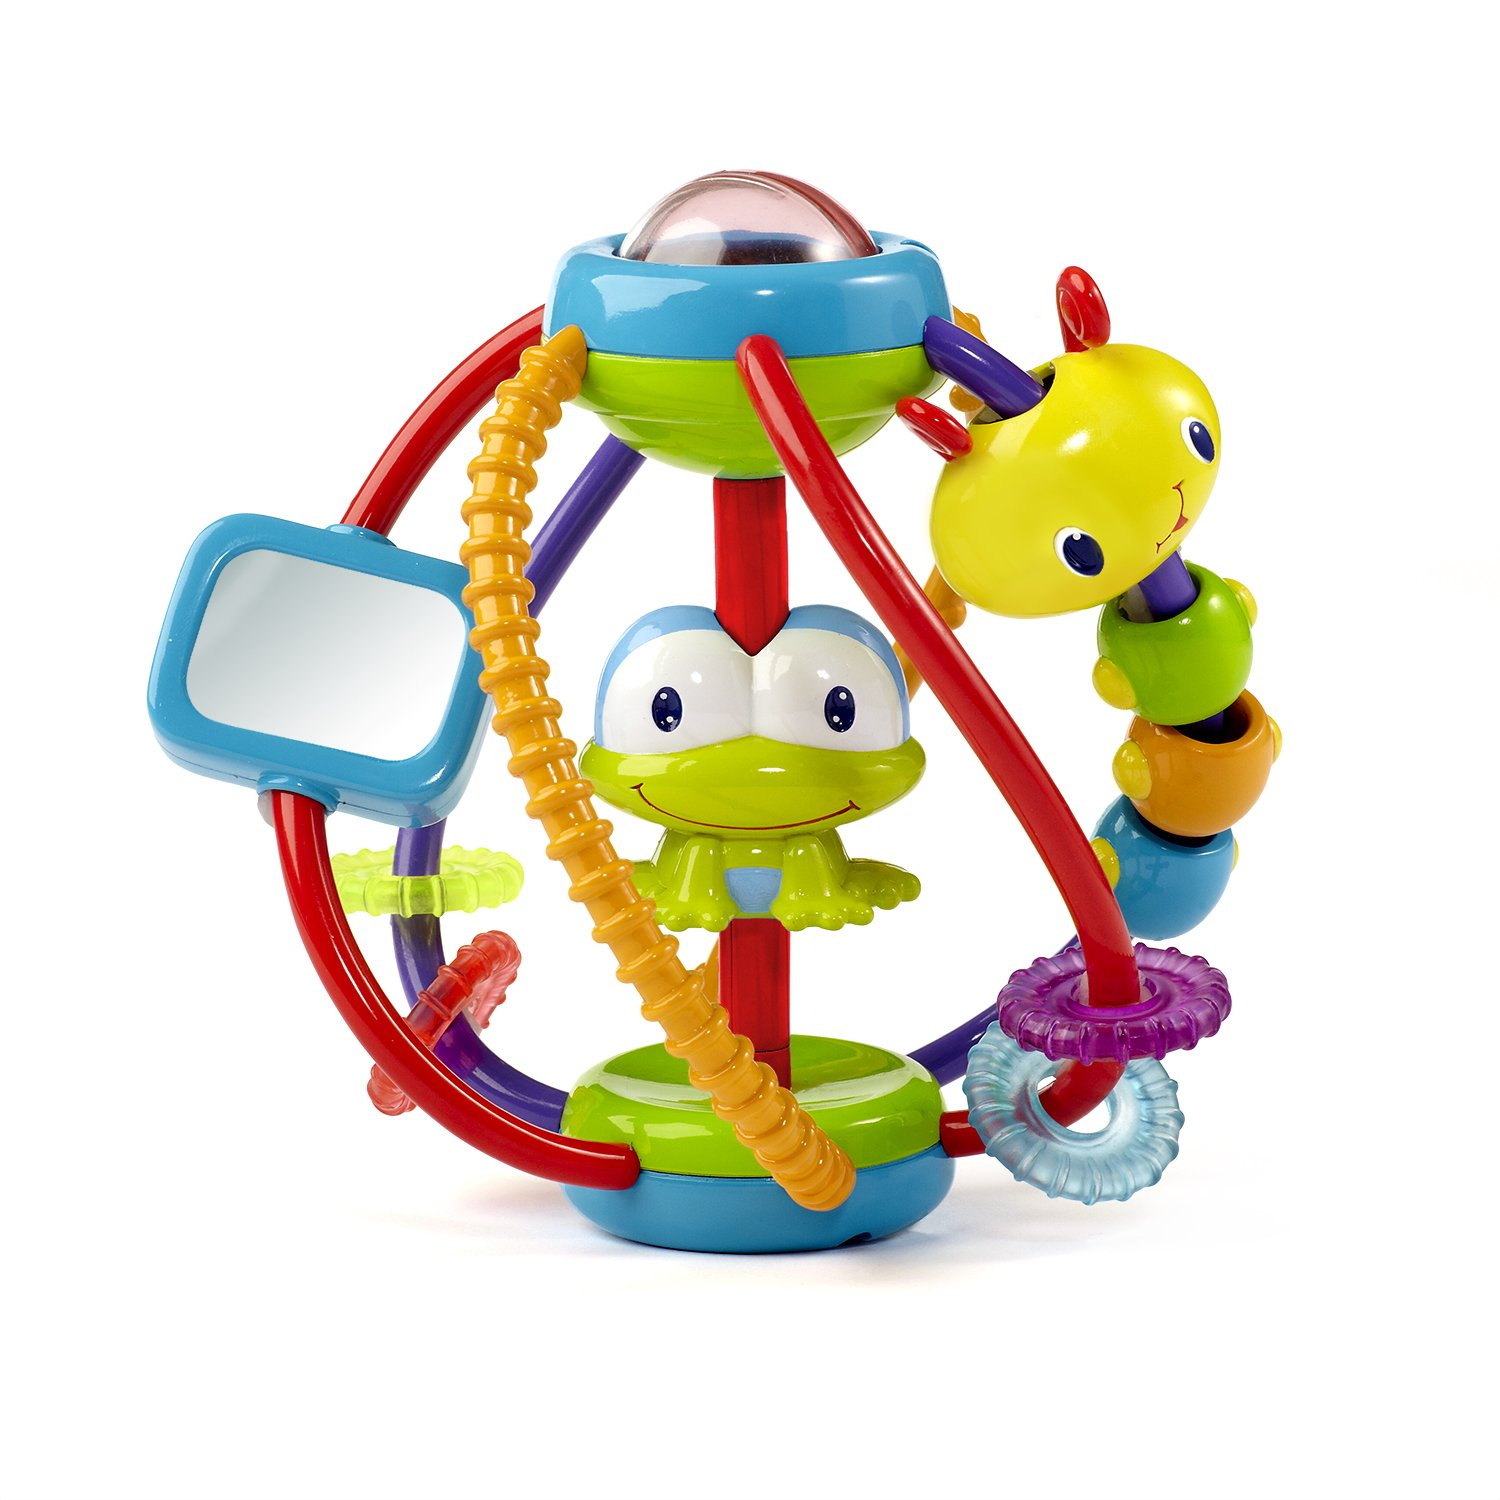 Babies toys for babies